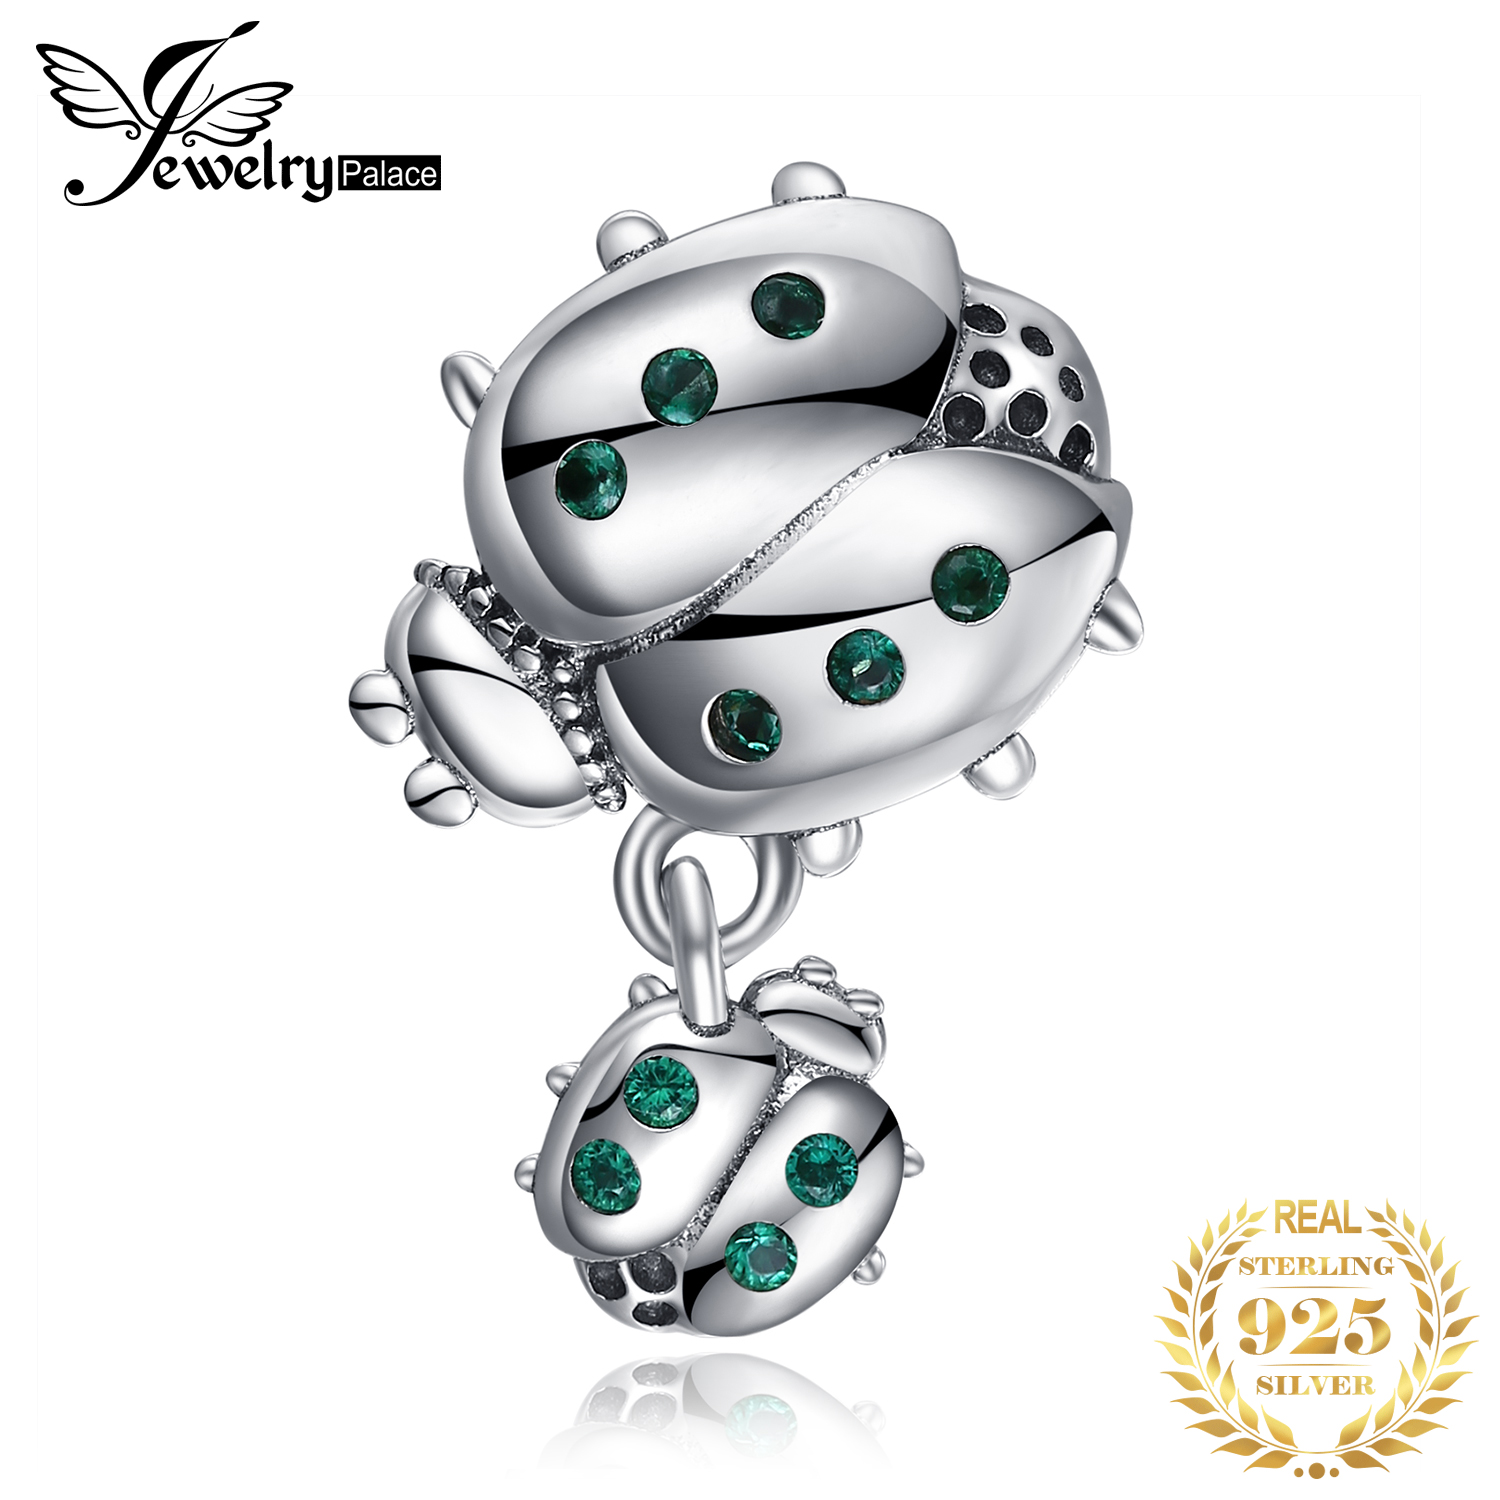 JewelryPalace Ladybird 925 Sterling Silver Beads Charms Silver 925 Original For Bracelet Silver 925 Original For Jewelry Making